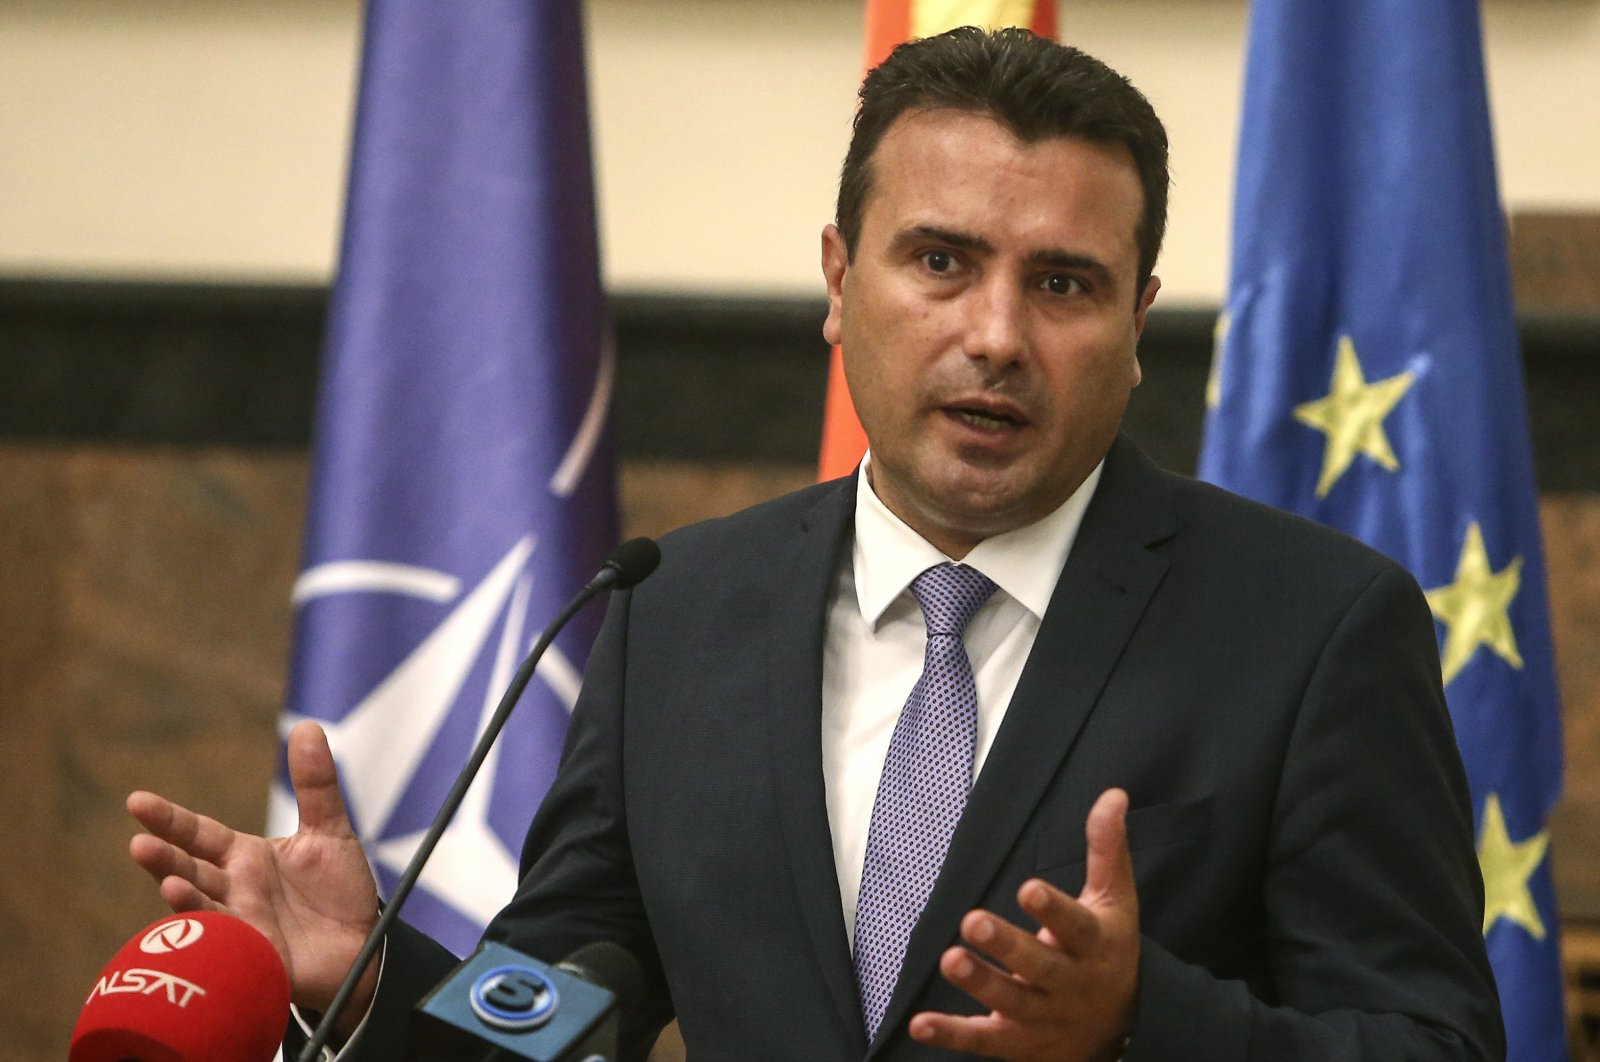 Prime Minister Zoran Zaev talks to the media after the country's parliament elected the new government, in the parliament building in Skopje, North Macedonia, Aug. 30, 2020. (AP Photo)